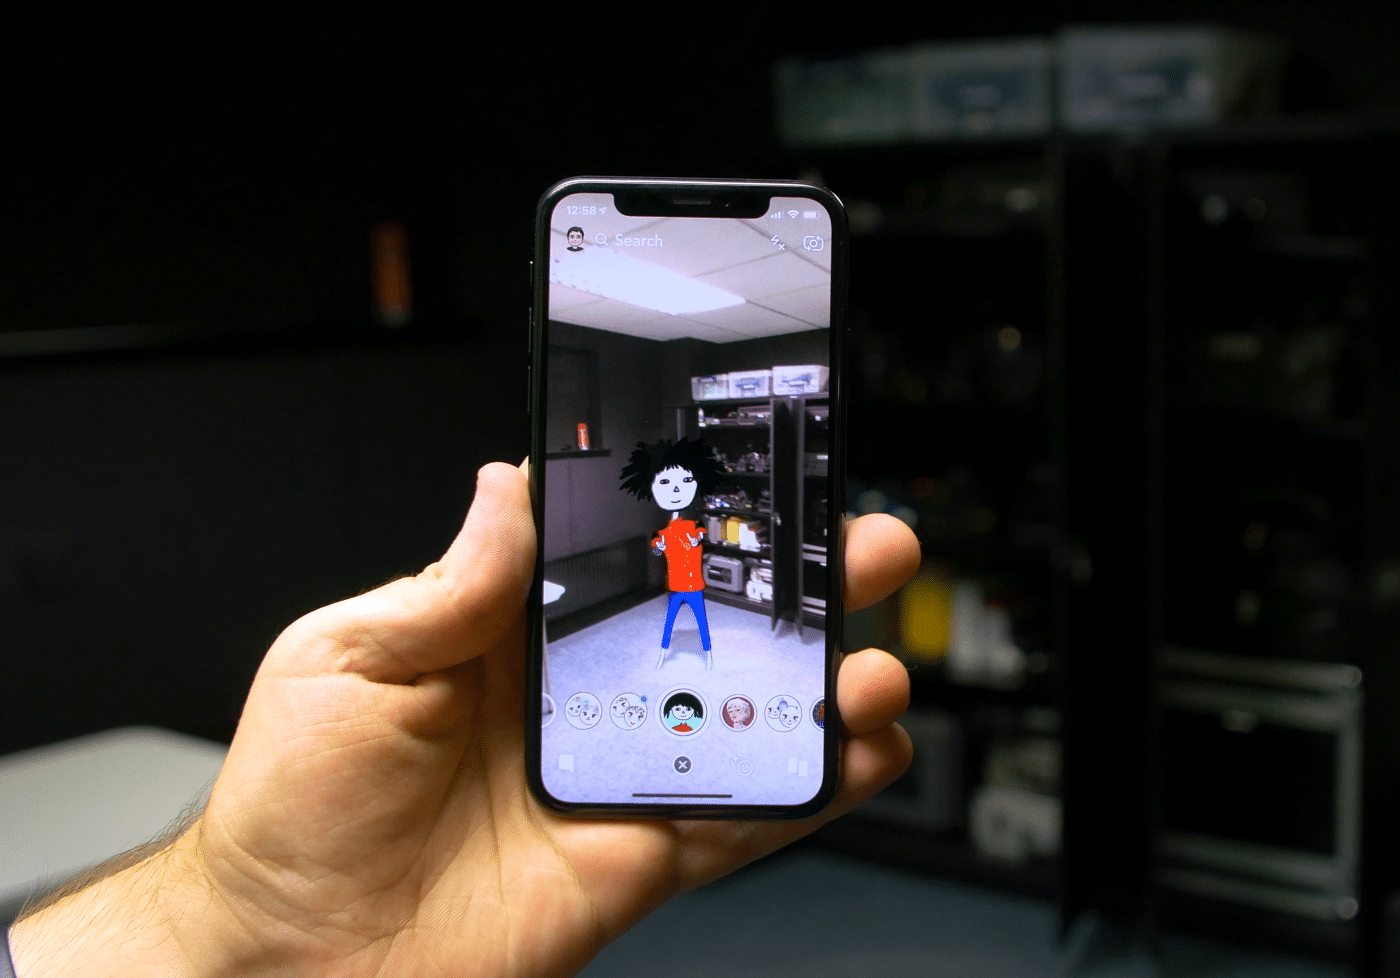 Augmented Reality AR using Snapchat